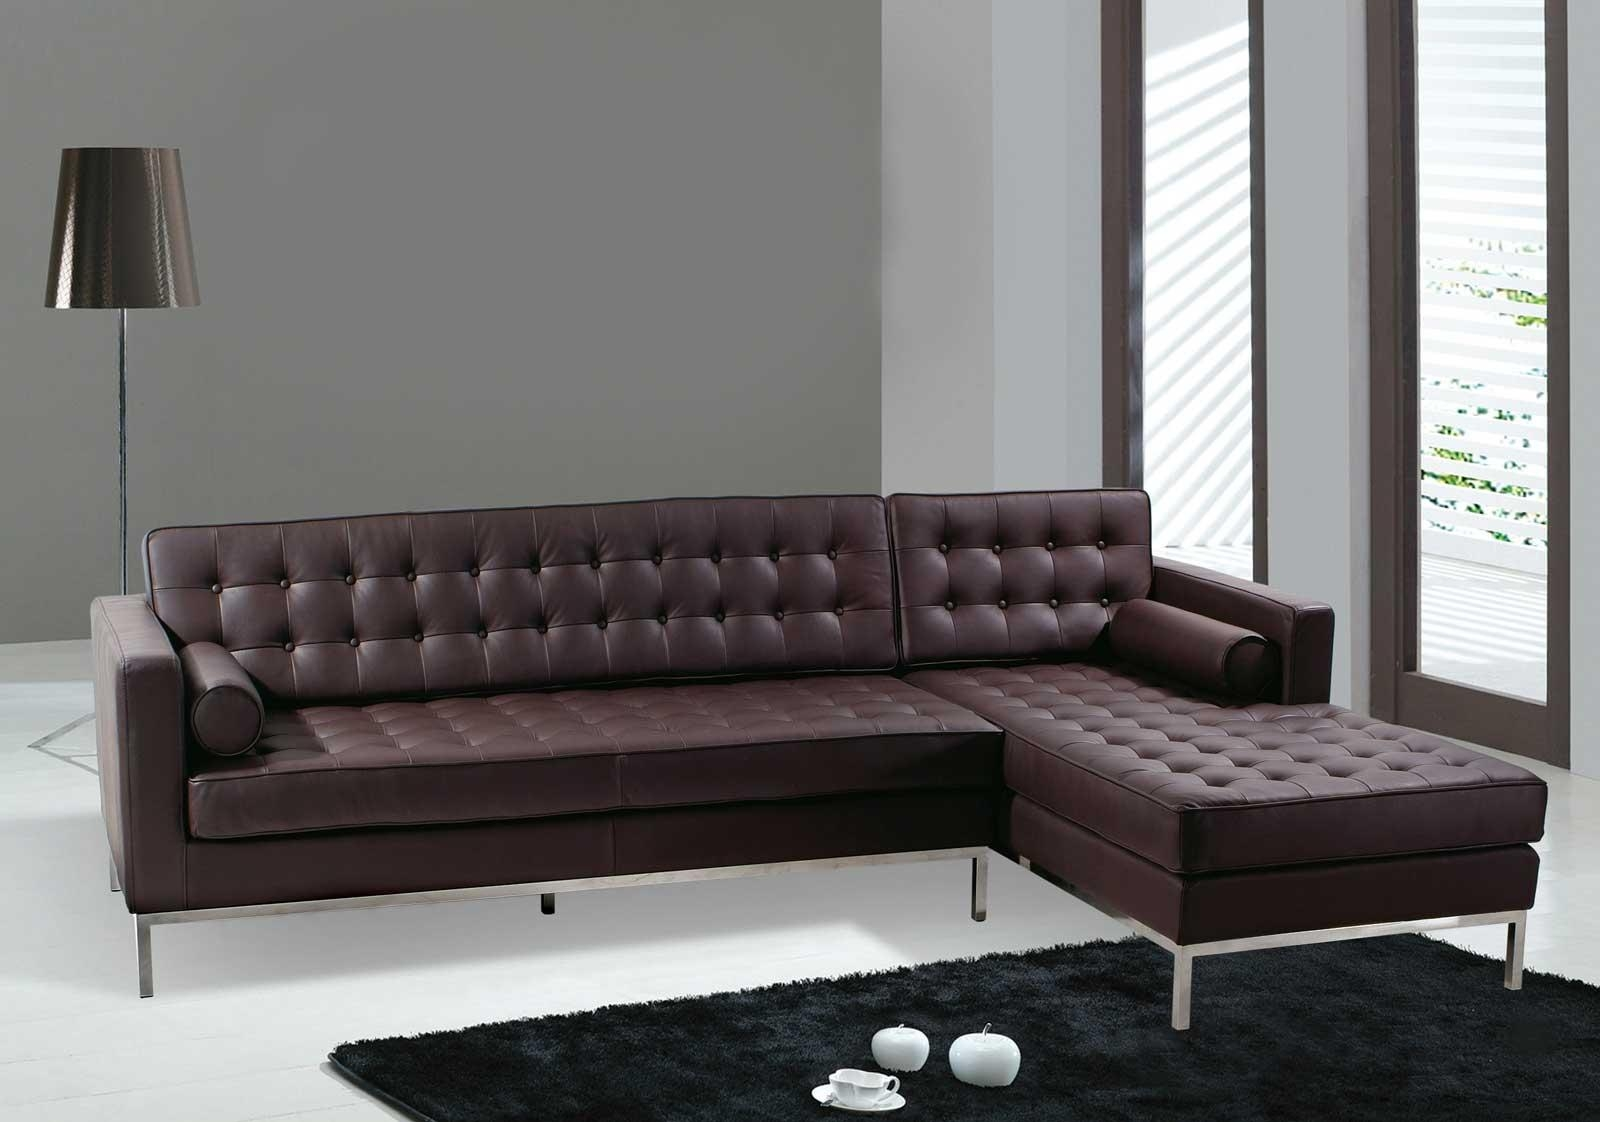 Modern Leather Sectional Sofas Leather — Liberty Interior Pertaining To Italian Leather Sectionals Contemporary (Image 14 of 20)